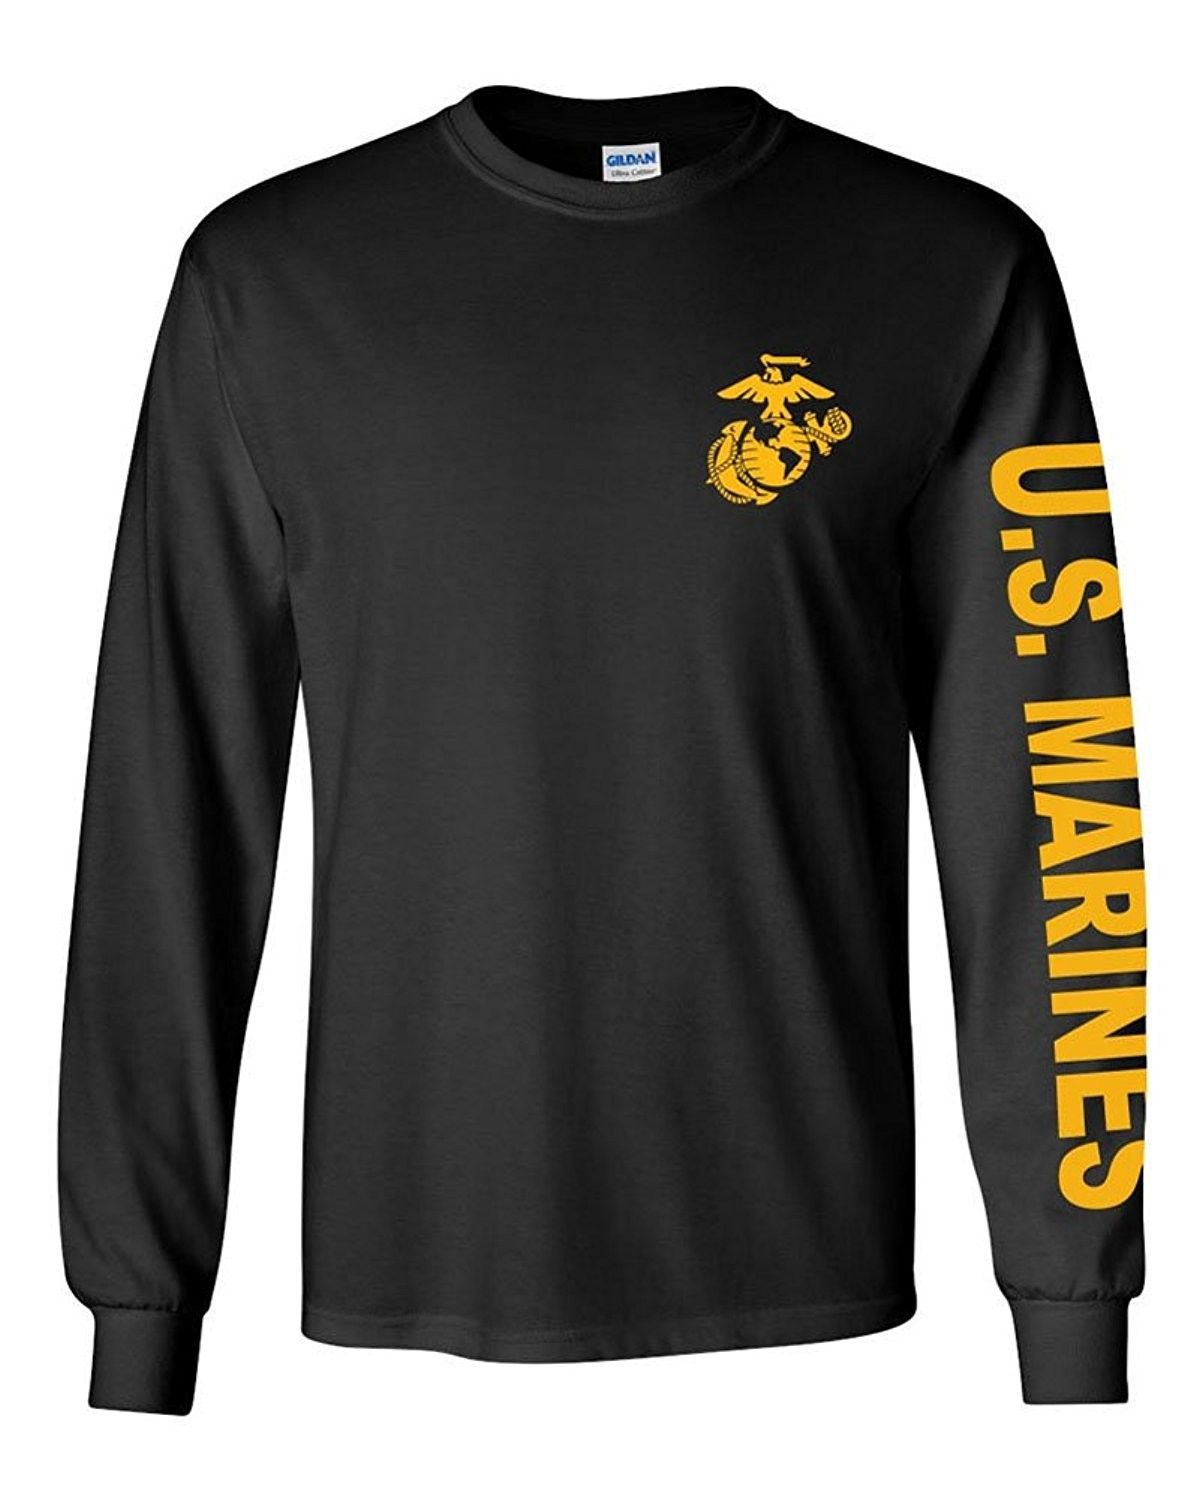 Long Sleeve Graphic Tee Military Tactical Gear Clothes USMC Marines T-shirt Top